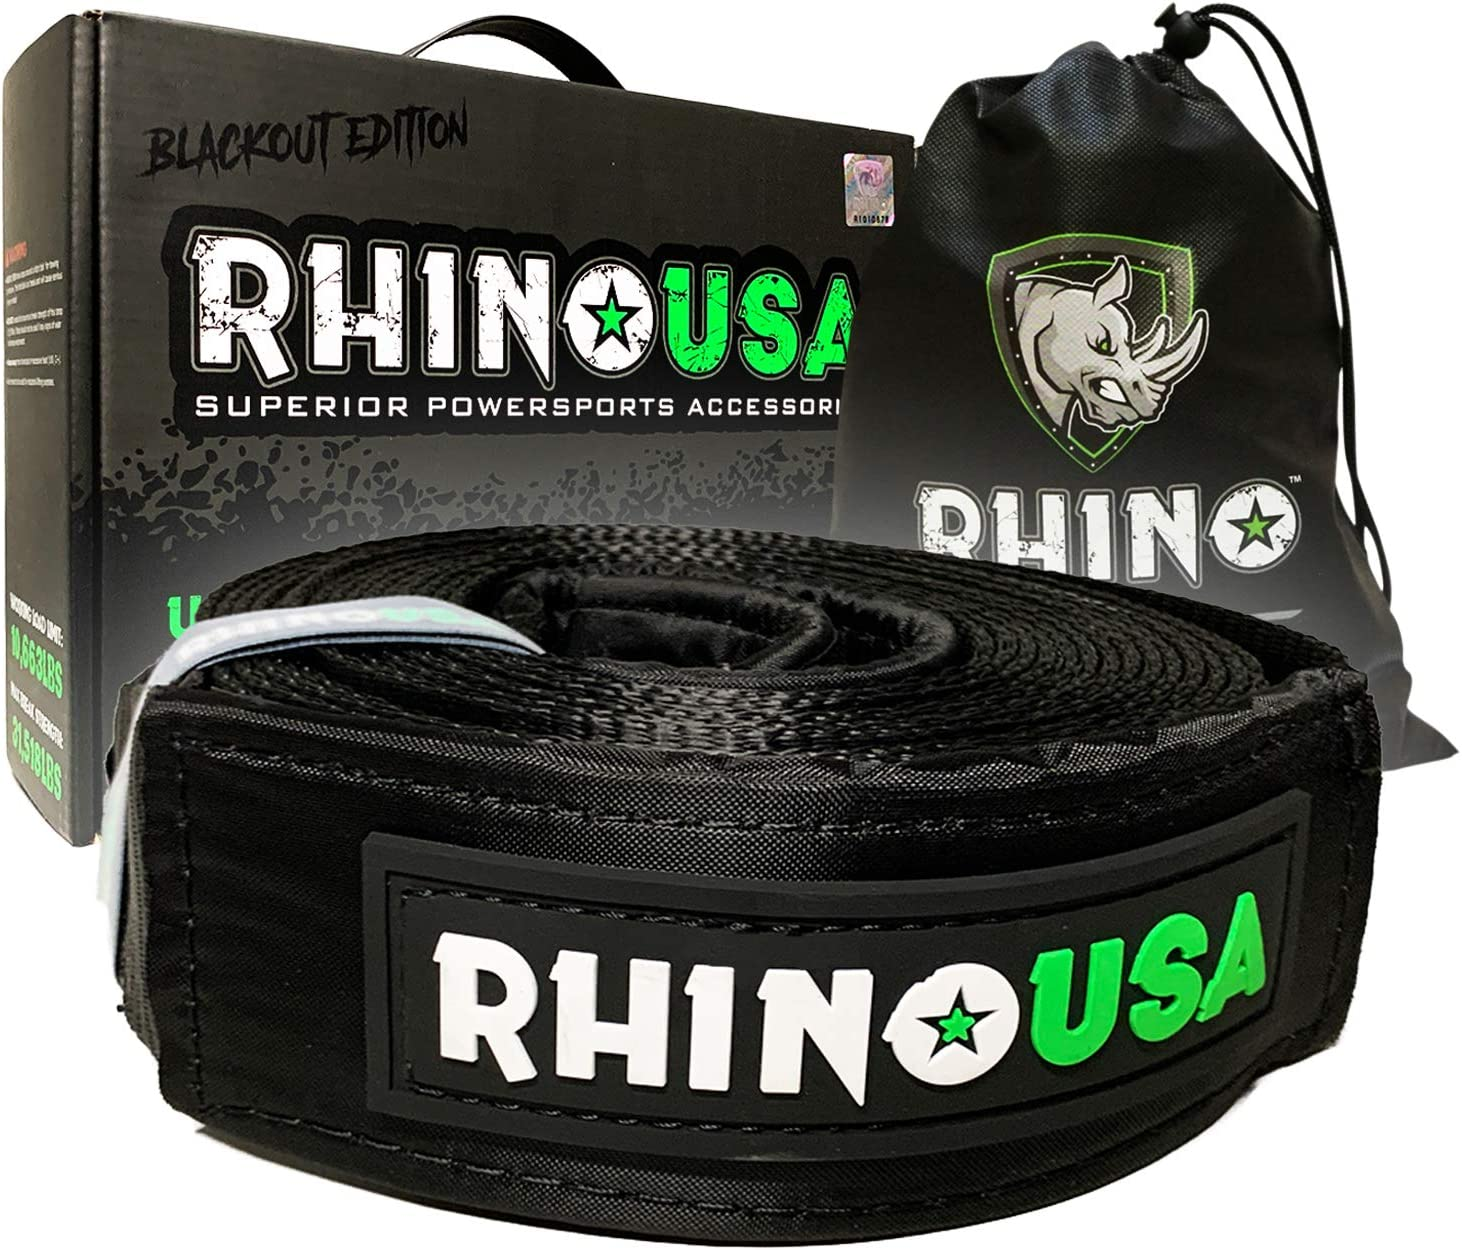 Triple Reinforced Loop Straps to Ensure Peace of Mind Rhino USA Blackout Edition Recovery Tow Strap 3 x 30ft Heavy Duty Draw String Included Lab Tested 31,518lb Break Strength Emergency Rope